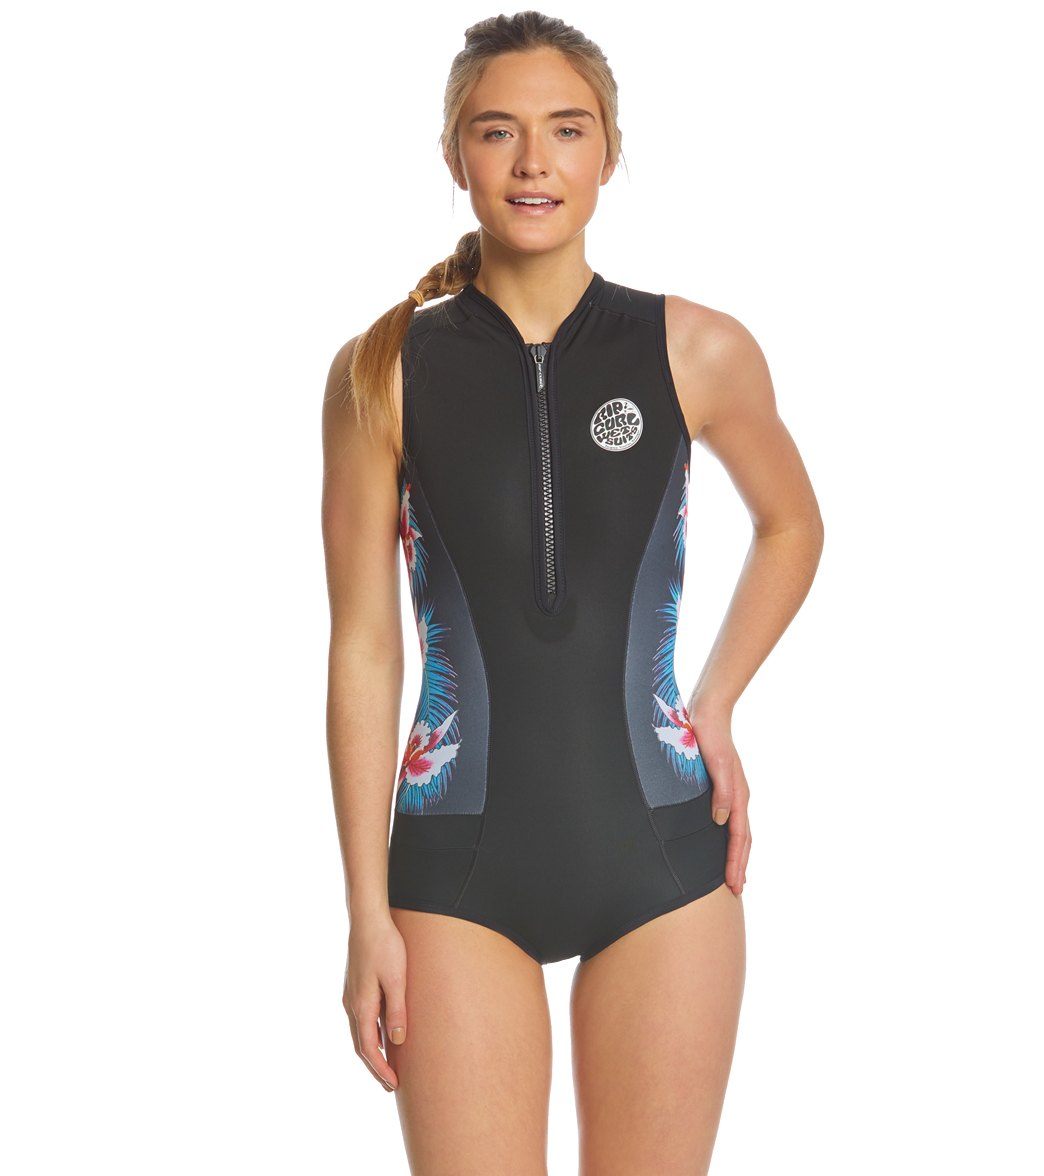 Rip Curl Women s G Bomb Capsleeve Sublimated Springsuit at SwimOutlet.com -  Free Shipping c571c6efa